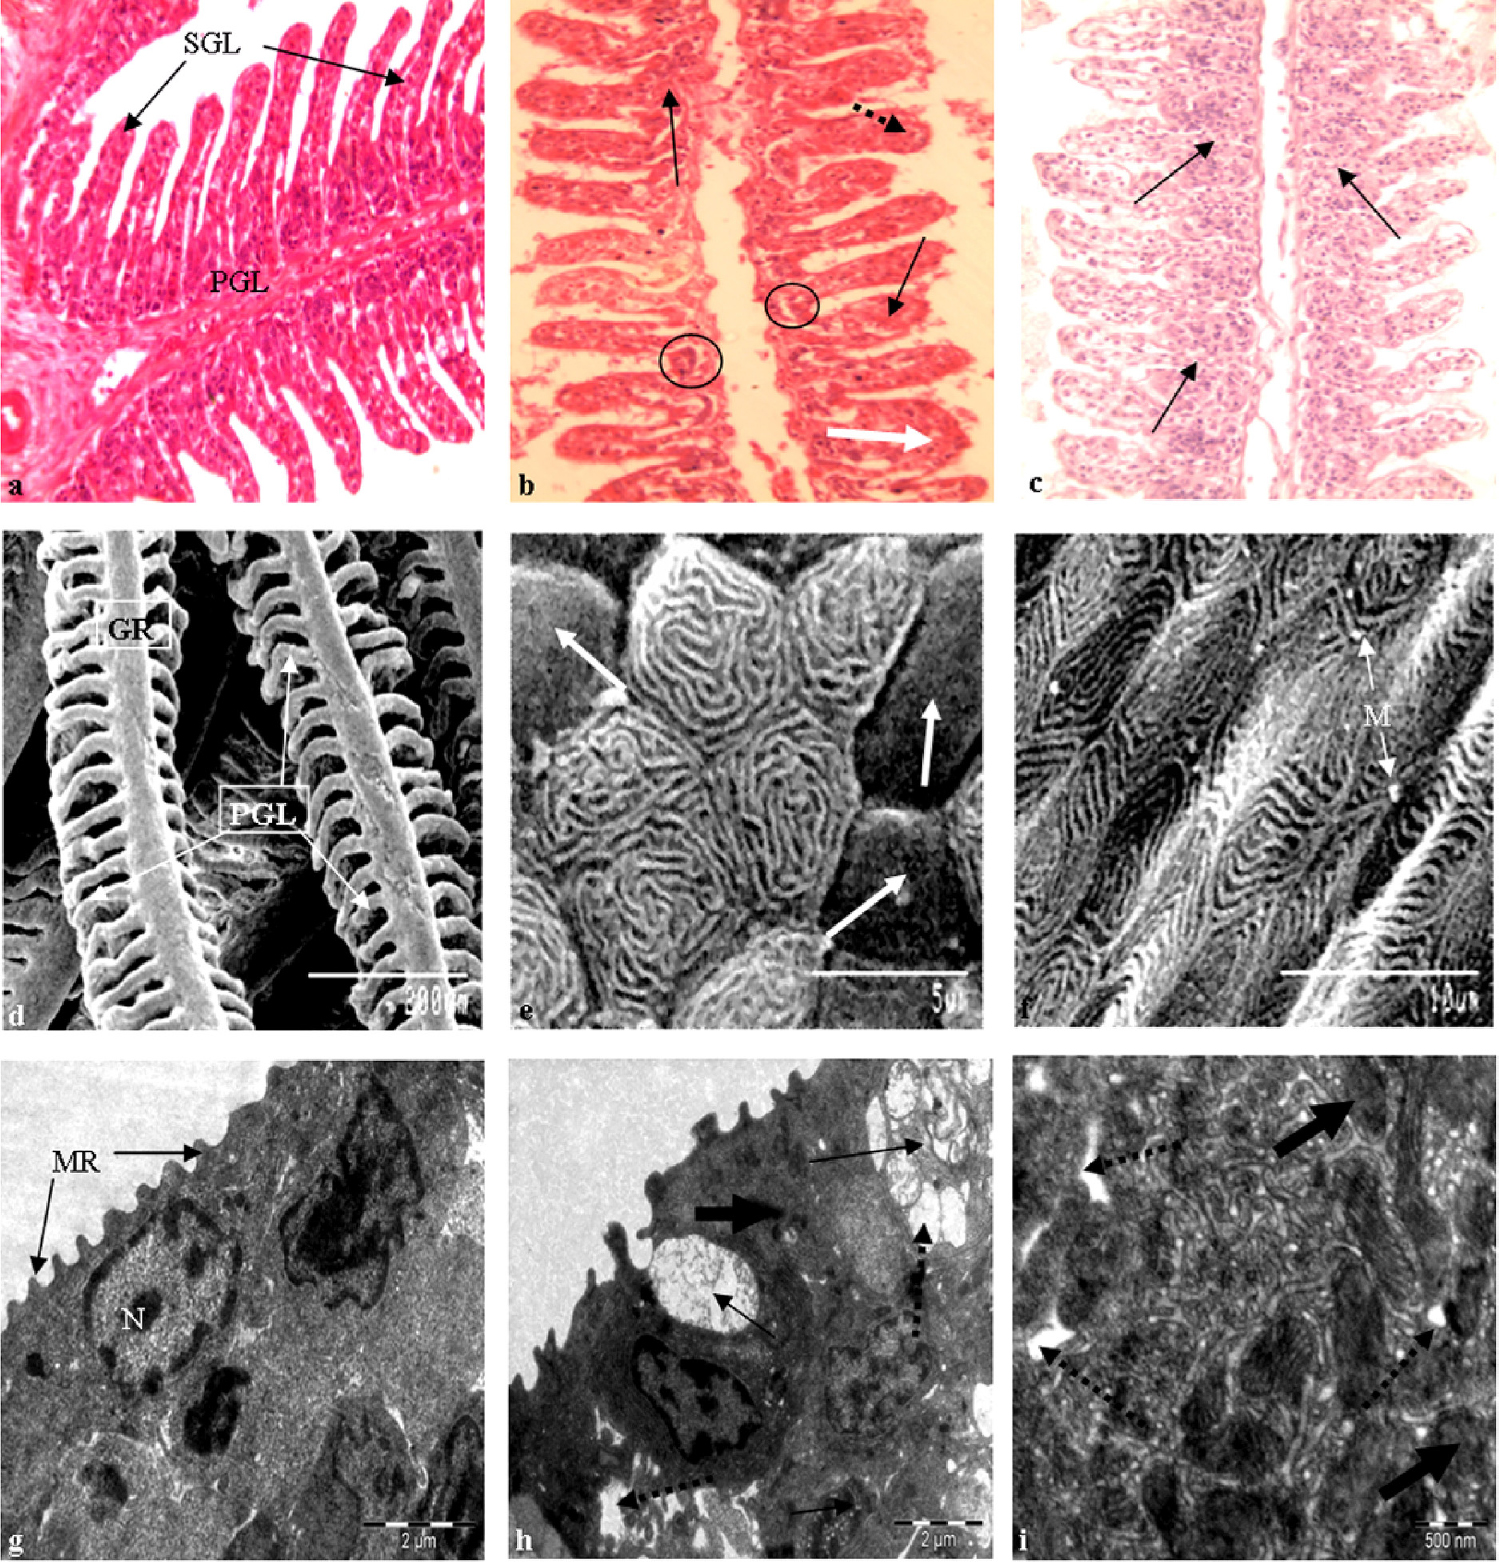 Figure 1: Histopathological photomicrographs of gills of <i>Heteropneustes fossilis</i> under control conditions (Co), glyphosate-treated laboratory conditions (GL), and glyphosate-treated field conditions (GF). (A) Normal structure of primary gill lamellae (PGL) and secondary (SGL) lamella under light microscopy (Co, 400×). (B) Hypertrophy (arrow), fusion (white arrow) of SGL and distortion of chloride (oval) and pillar cells (broken arrow) under light microscopy (GL, 400×). (C) Partial fusion of SGL (white arrow) and hypertrophy (arrow) under light microscopy (GF, 400×). (D) SEM showing normal arrangement of gill rackers (GR) with primary gill lamellae (PGL) and stratified epithelial cells (SEC) on the PGL (Co, 200×). (E) Gill epithelium showing loss of Microridge (MR) in SEC (arrow) under SEM (GL, 8000×). (F) Almost normal appearance of MR in SEC and excess mucin (M) droplets under SEM (GF, 5000×). (G) Gill epithelial cell under TEM showing normal chloride cells (CC), pavement cells (PC) with prominent mitochondria (M) with apical pore (square) (Co, 3200×).(H) Degenerative chloride cells (arrow), severe distortion in mitochondria (bold arrow), severe cytoplasmic vacuolation (broken arrow) with dilated endoplasmic reticulum underTEM (GL, 2500×). (I) Vacuolation (broken arrow) and dilated mitochondria (bold arrow) under TEM (GF, 8000×). SEM = scanning electron microscopy; TEM = transmission electron microscopy.